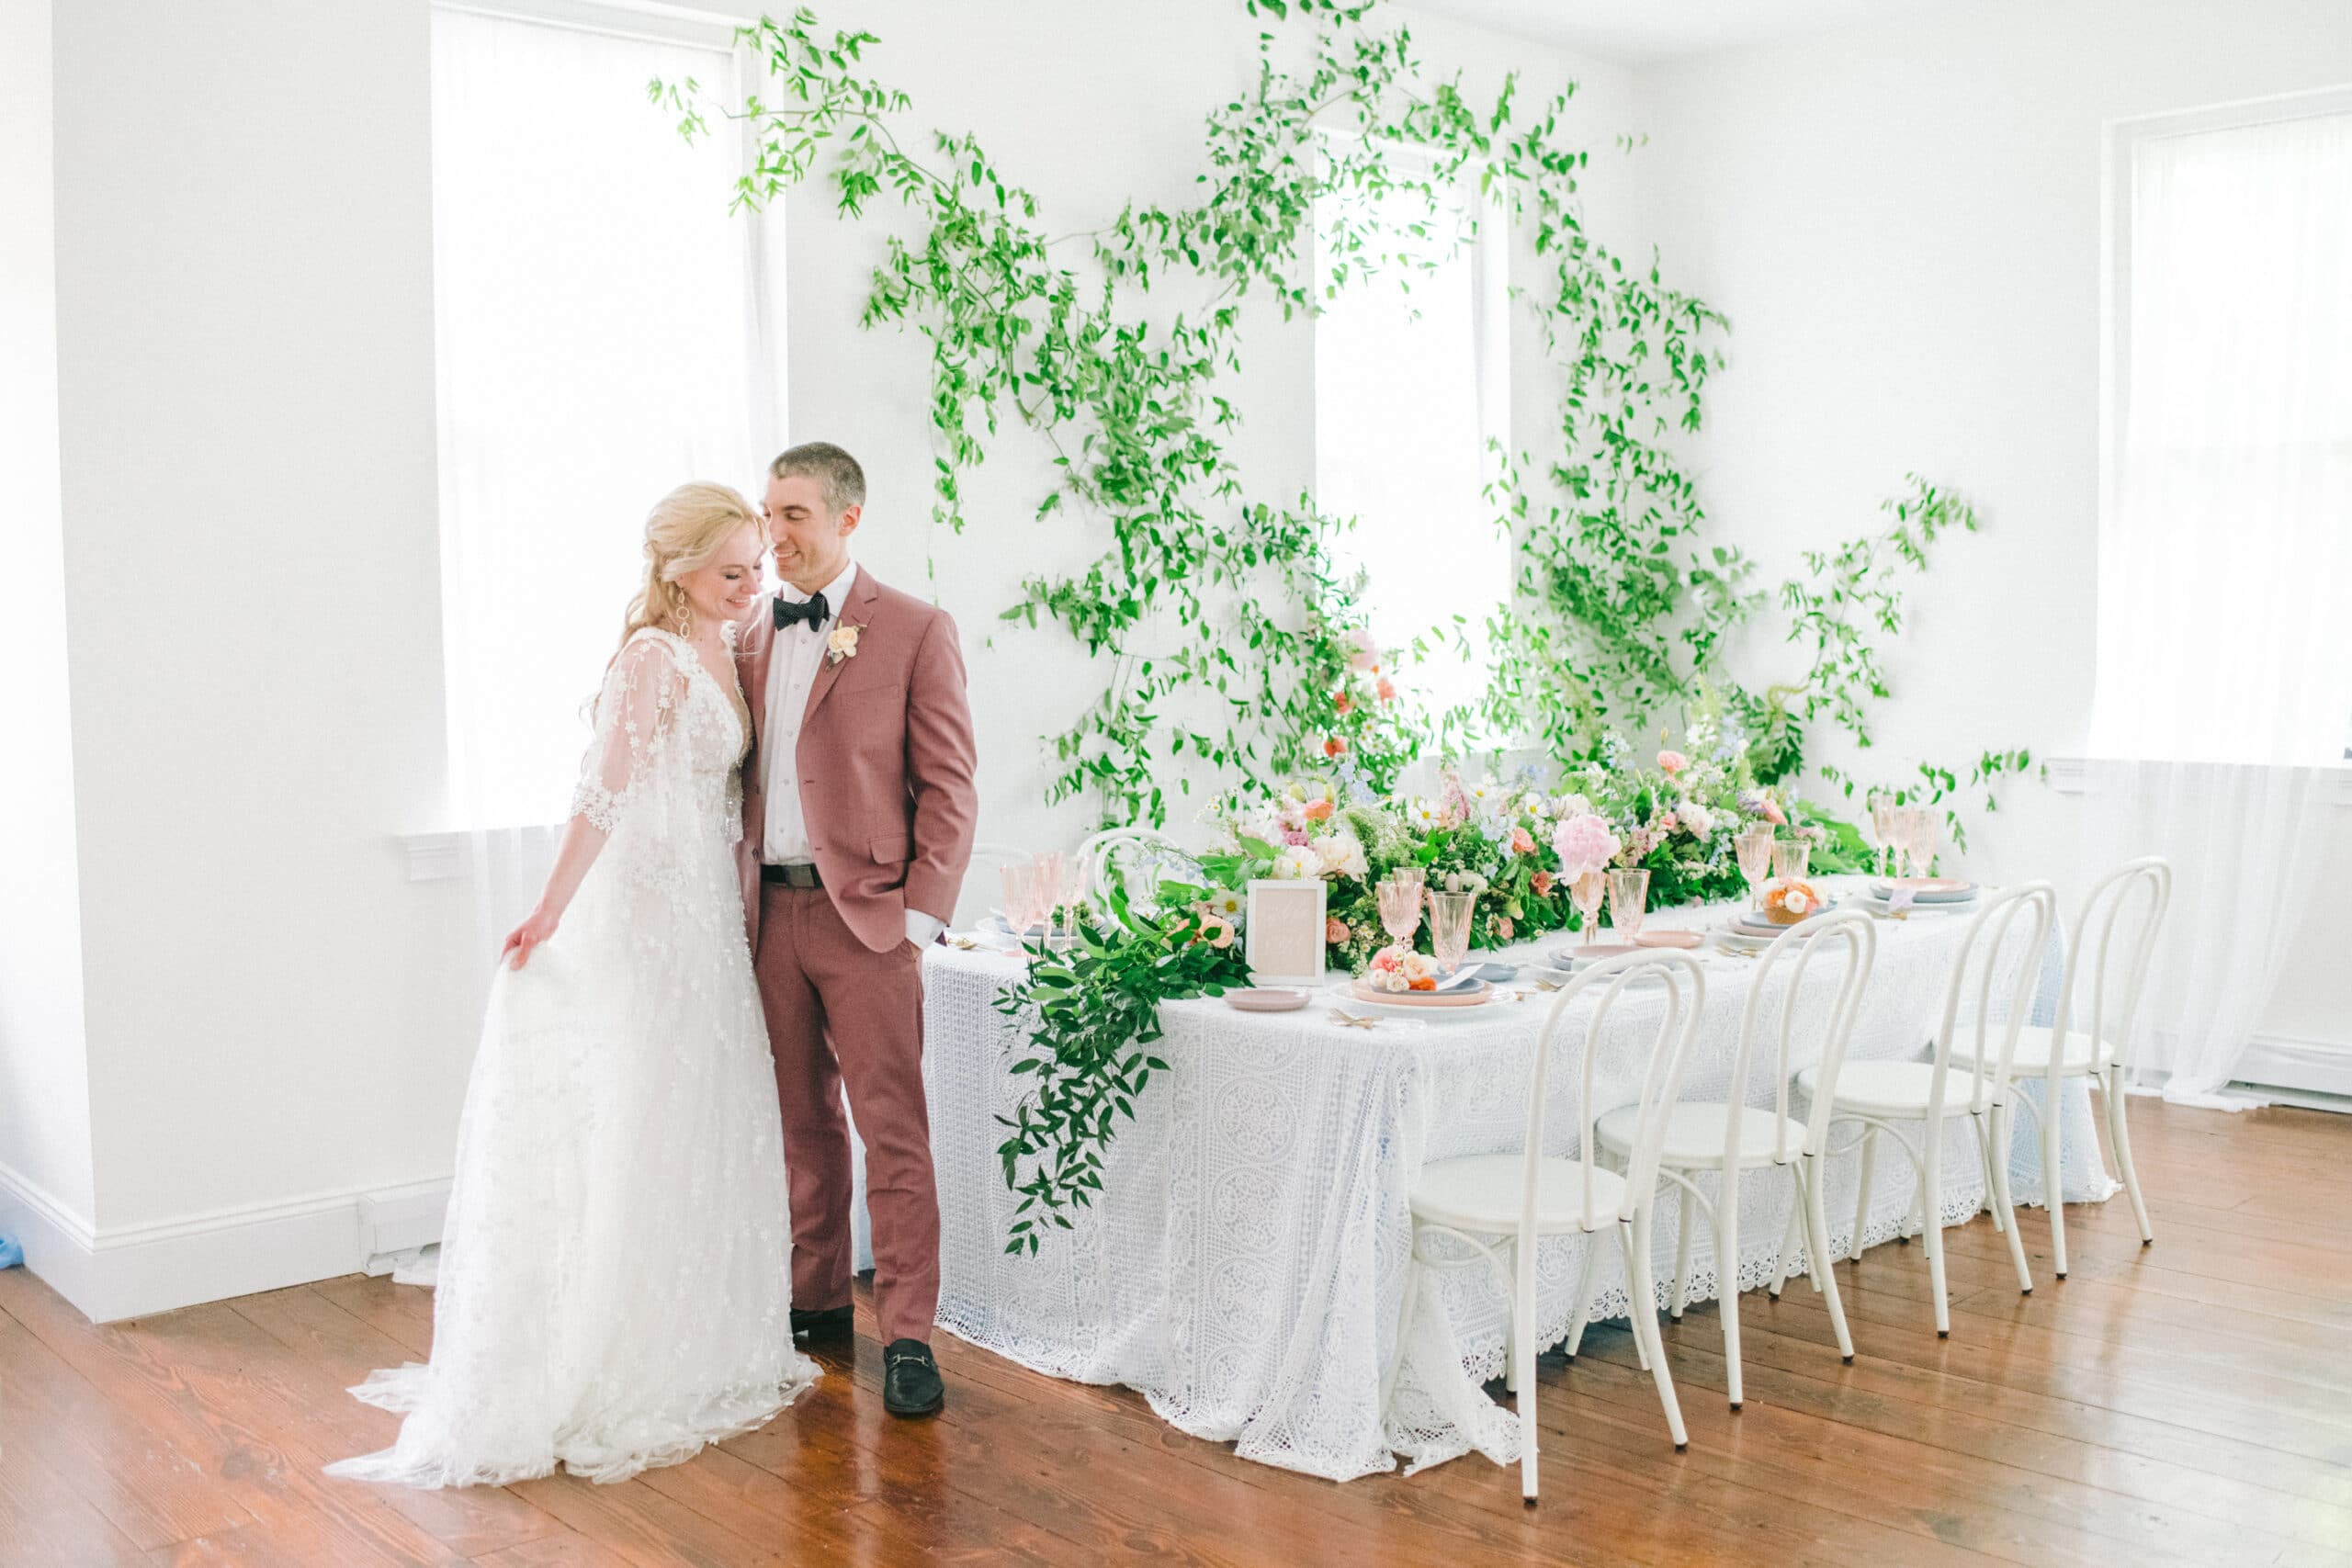 Couple at Wedding Table